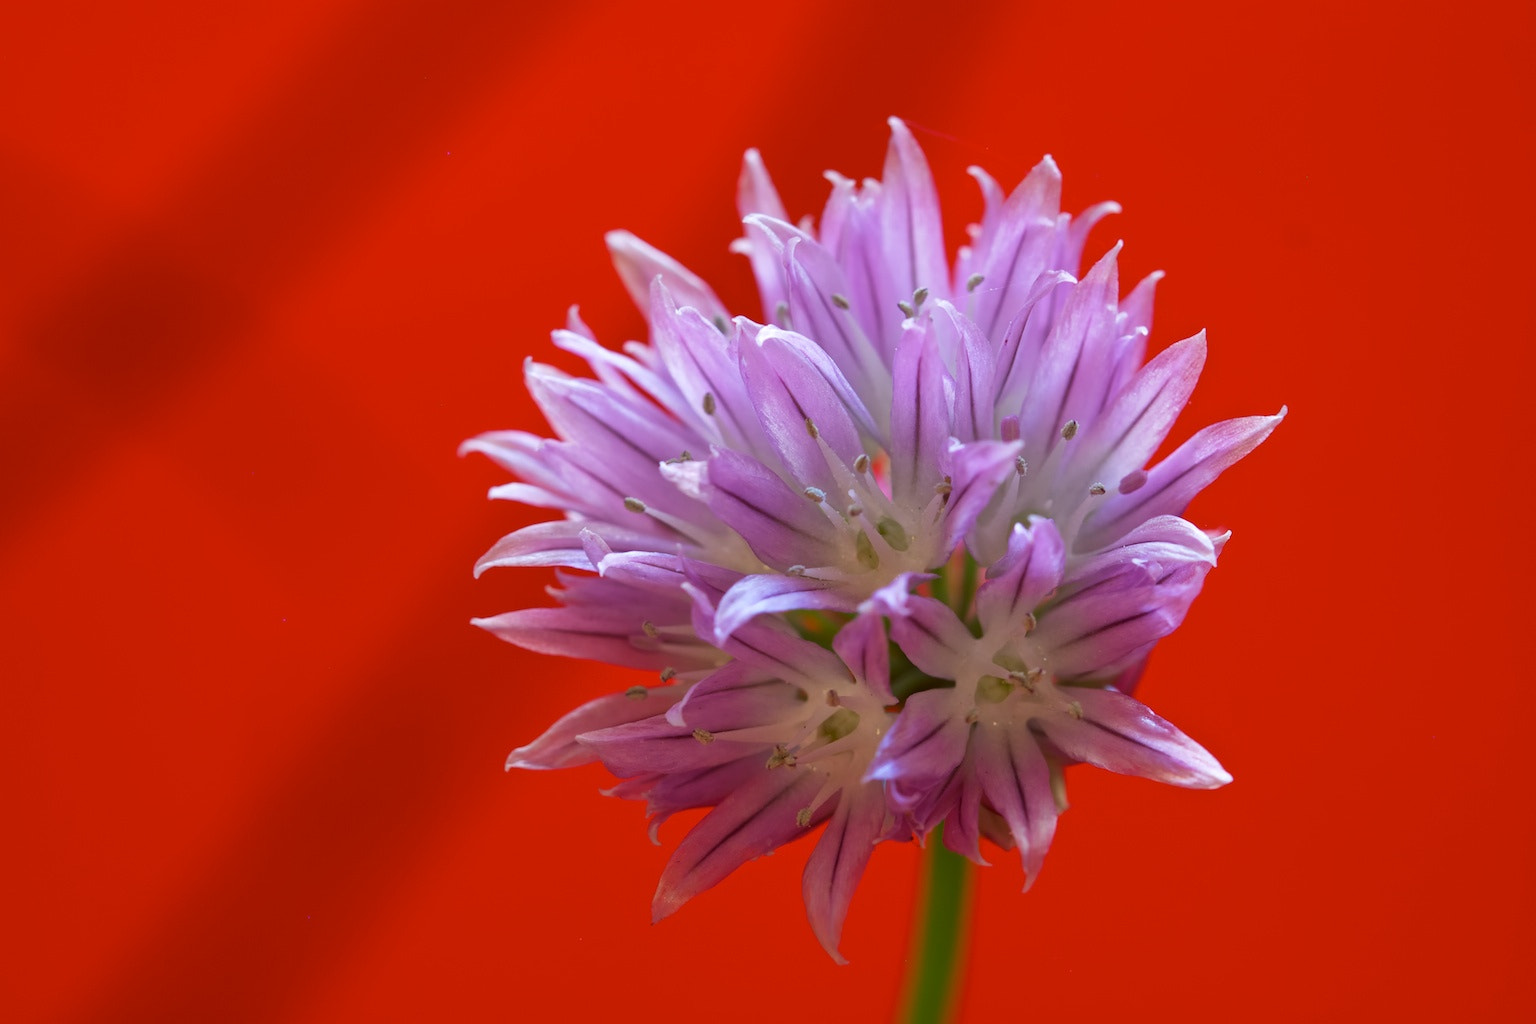 Photograph Chives in Red by Earl Bones on 500px